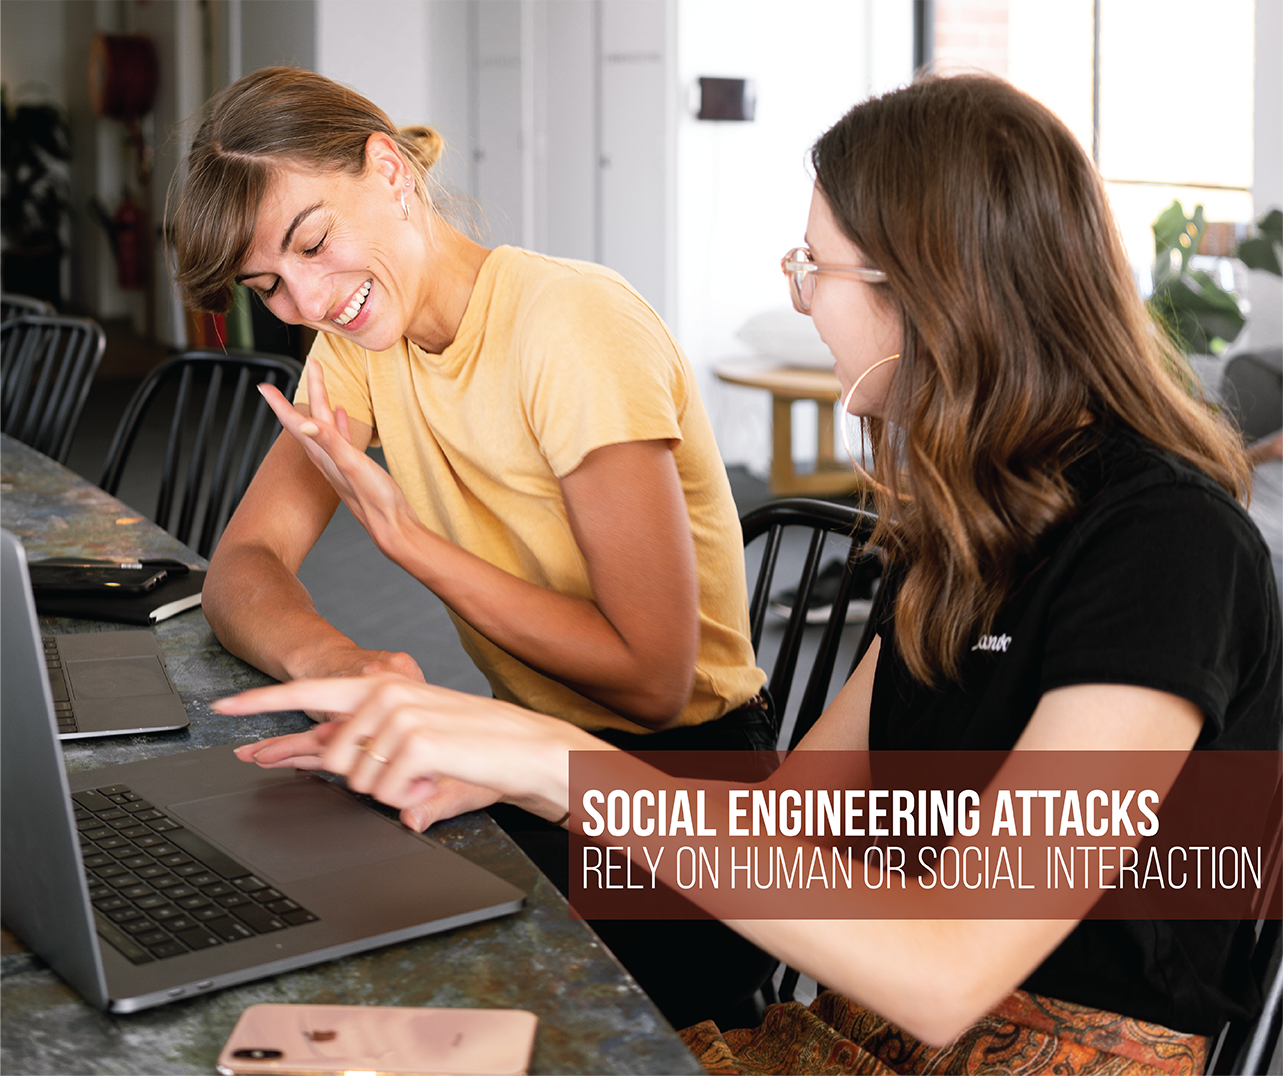 social engineering cyberattacks rely on human interaction